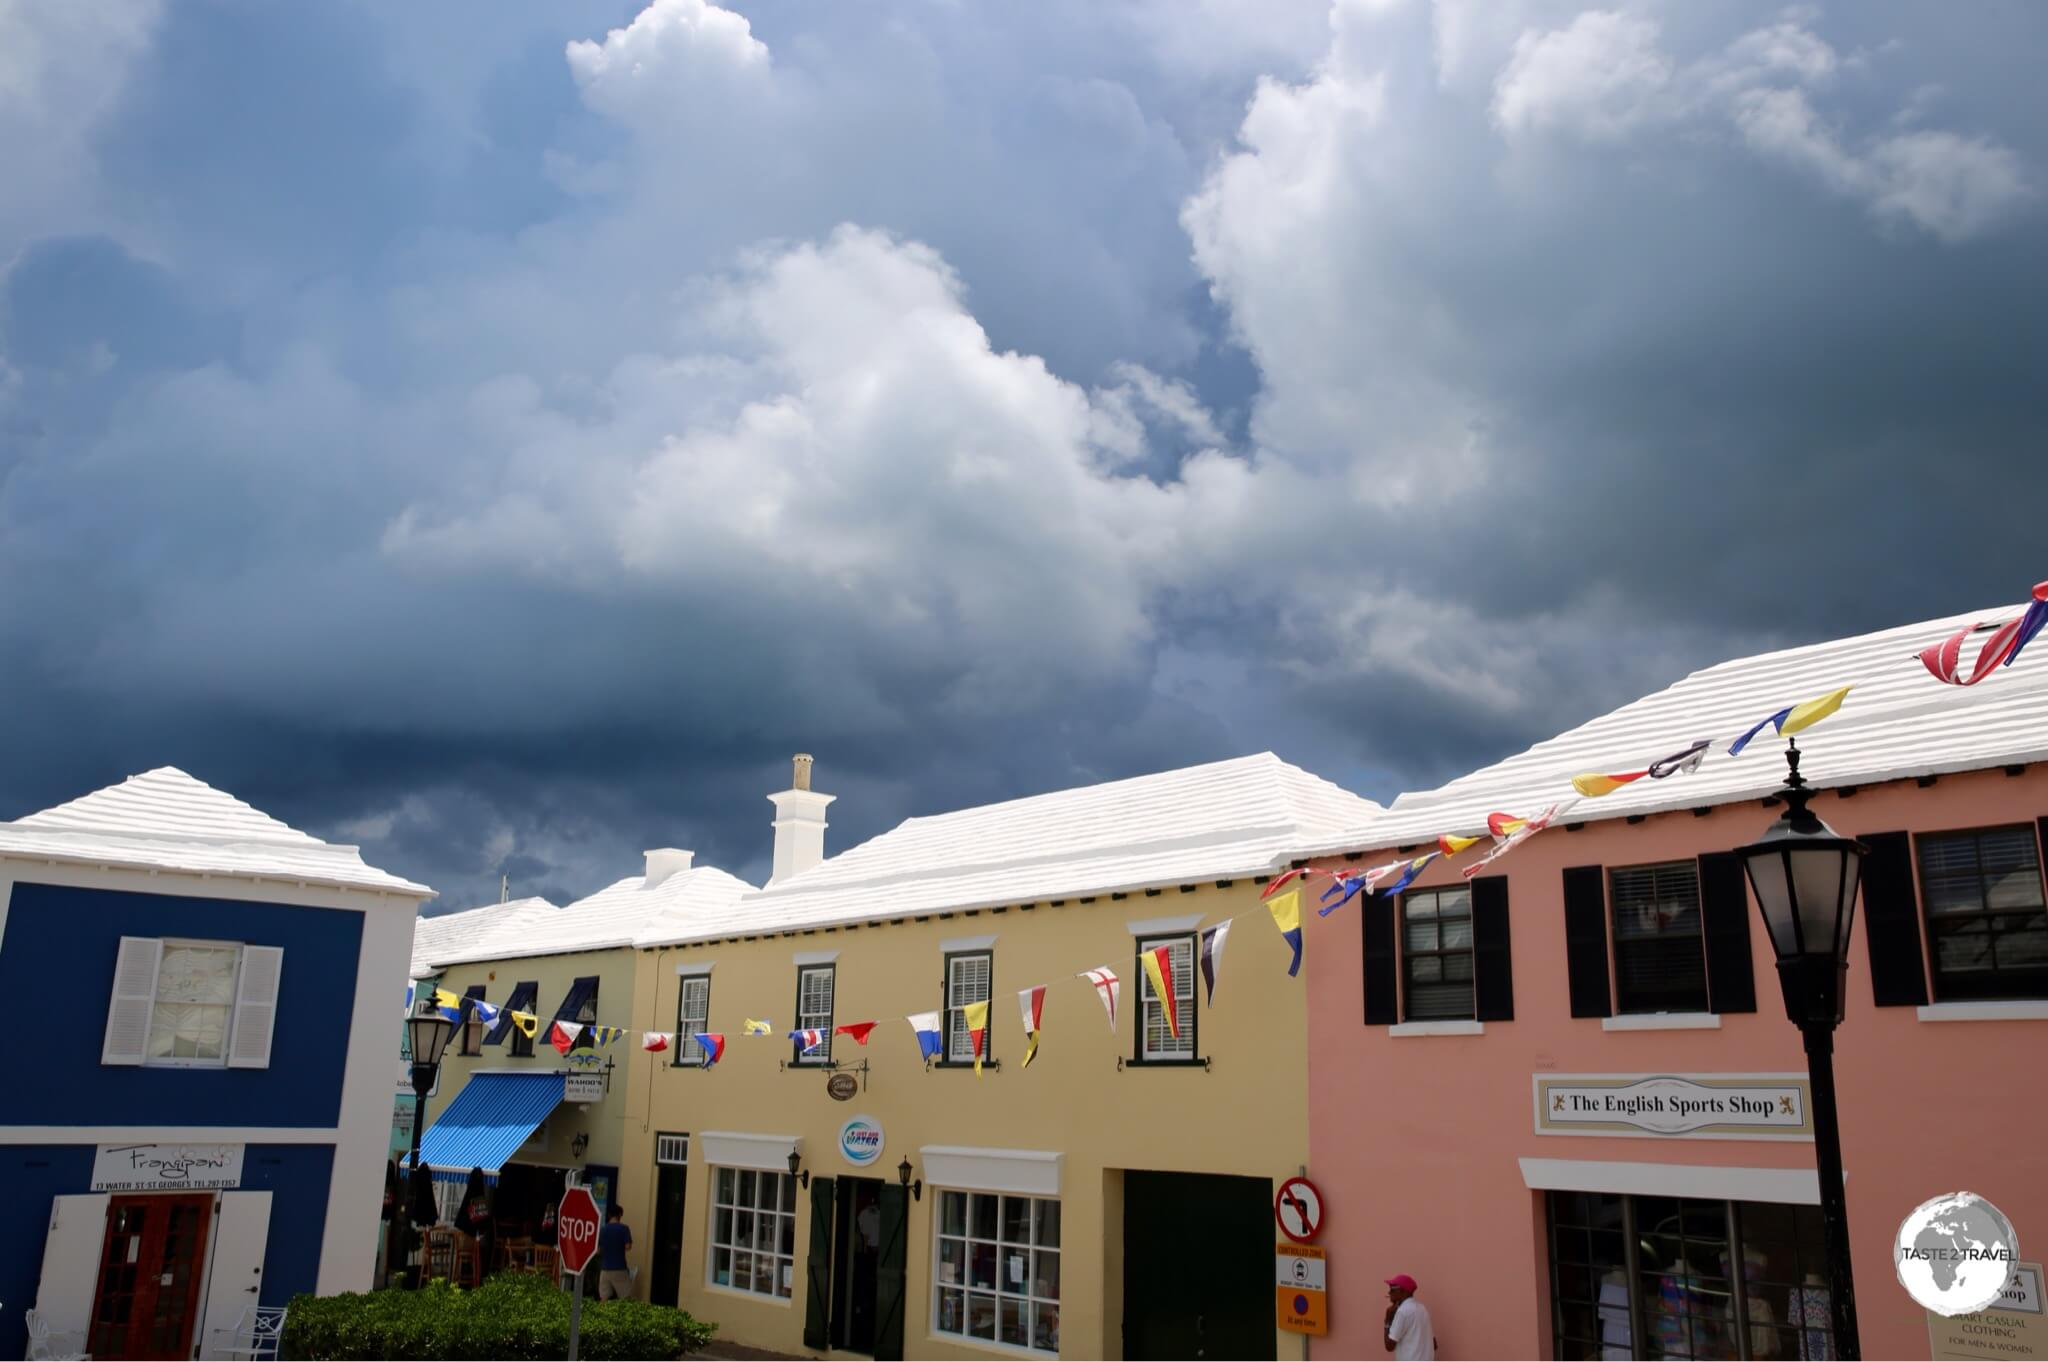 Today a UNESCO world Heritage site, St. Georges served as the capital of Bermuda for the first 200 years.